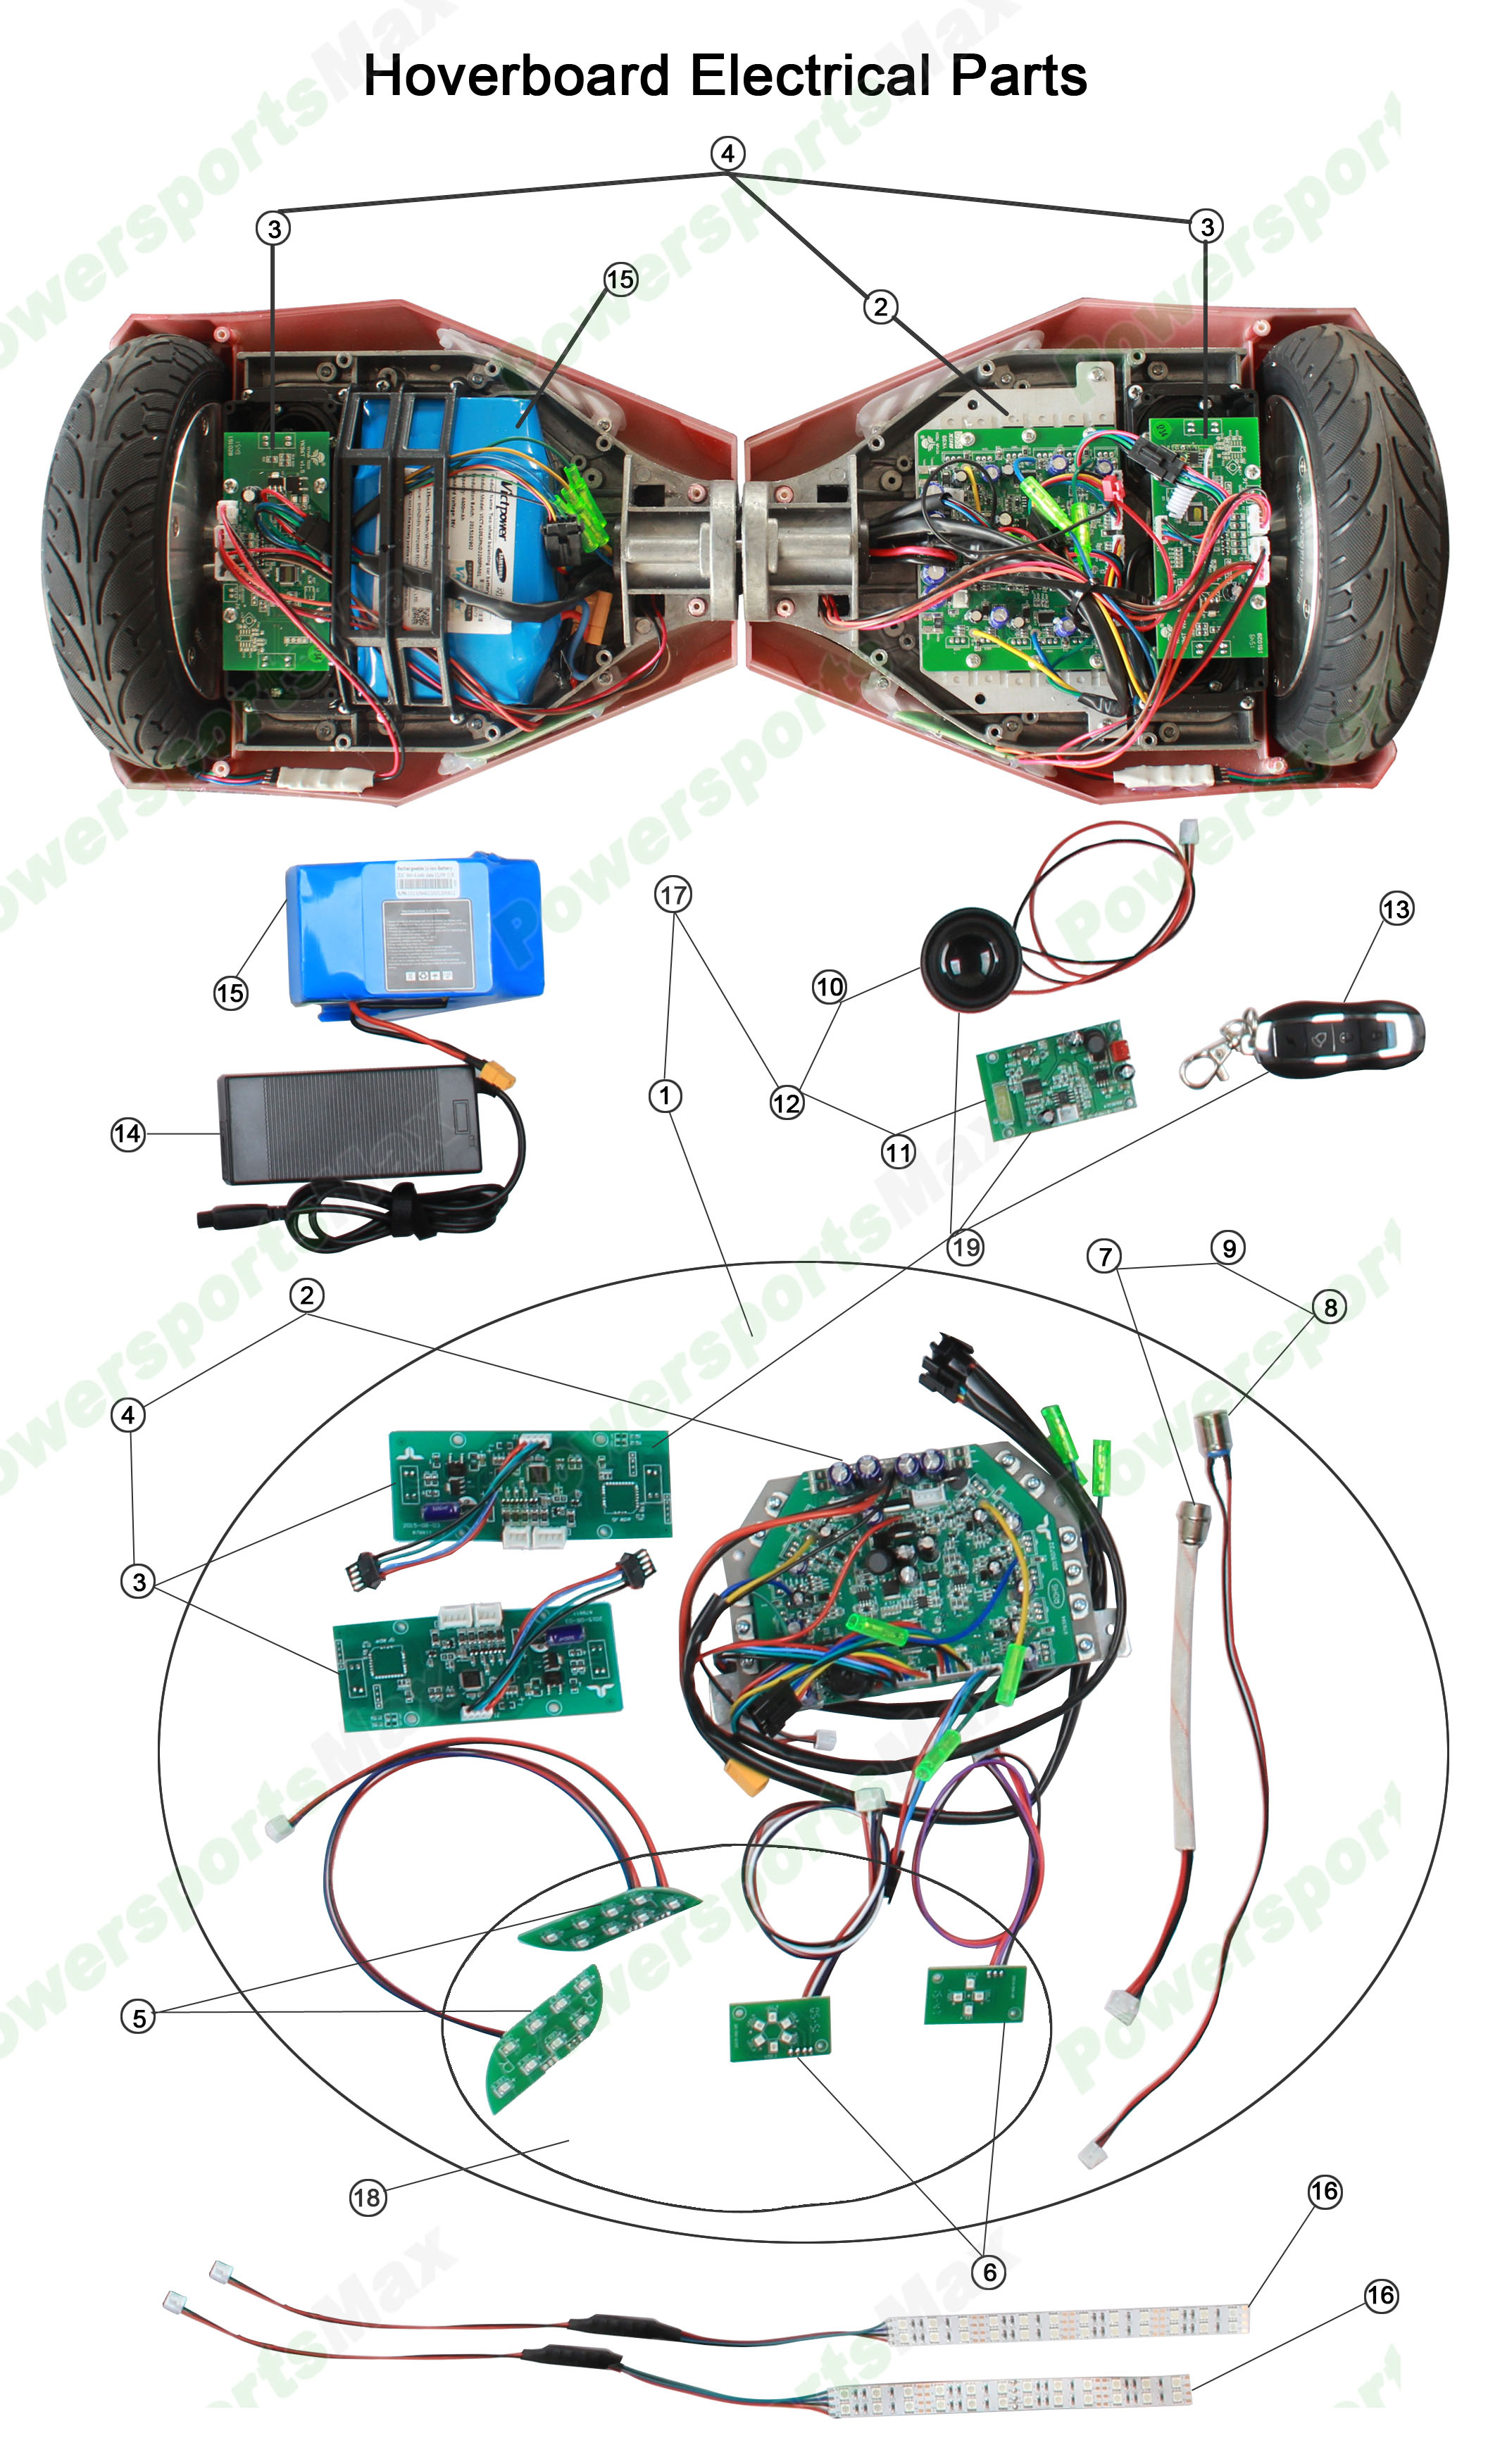 6.5'' Hoverboard Electric Hoverboard Parts - Hoverboard Wiring Diagram